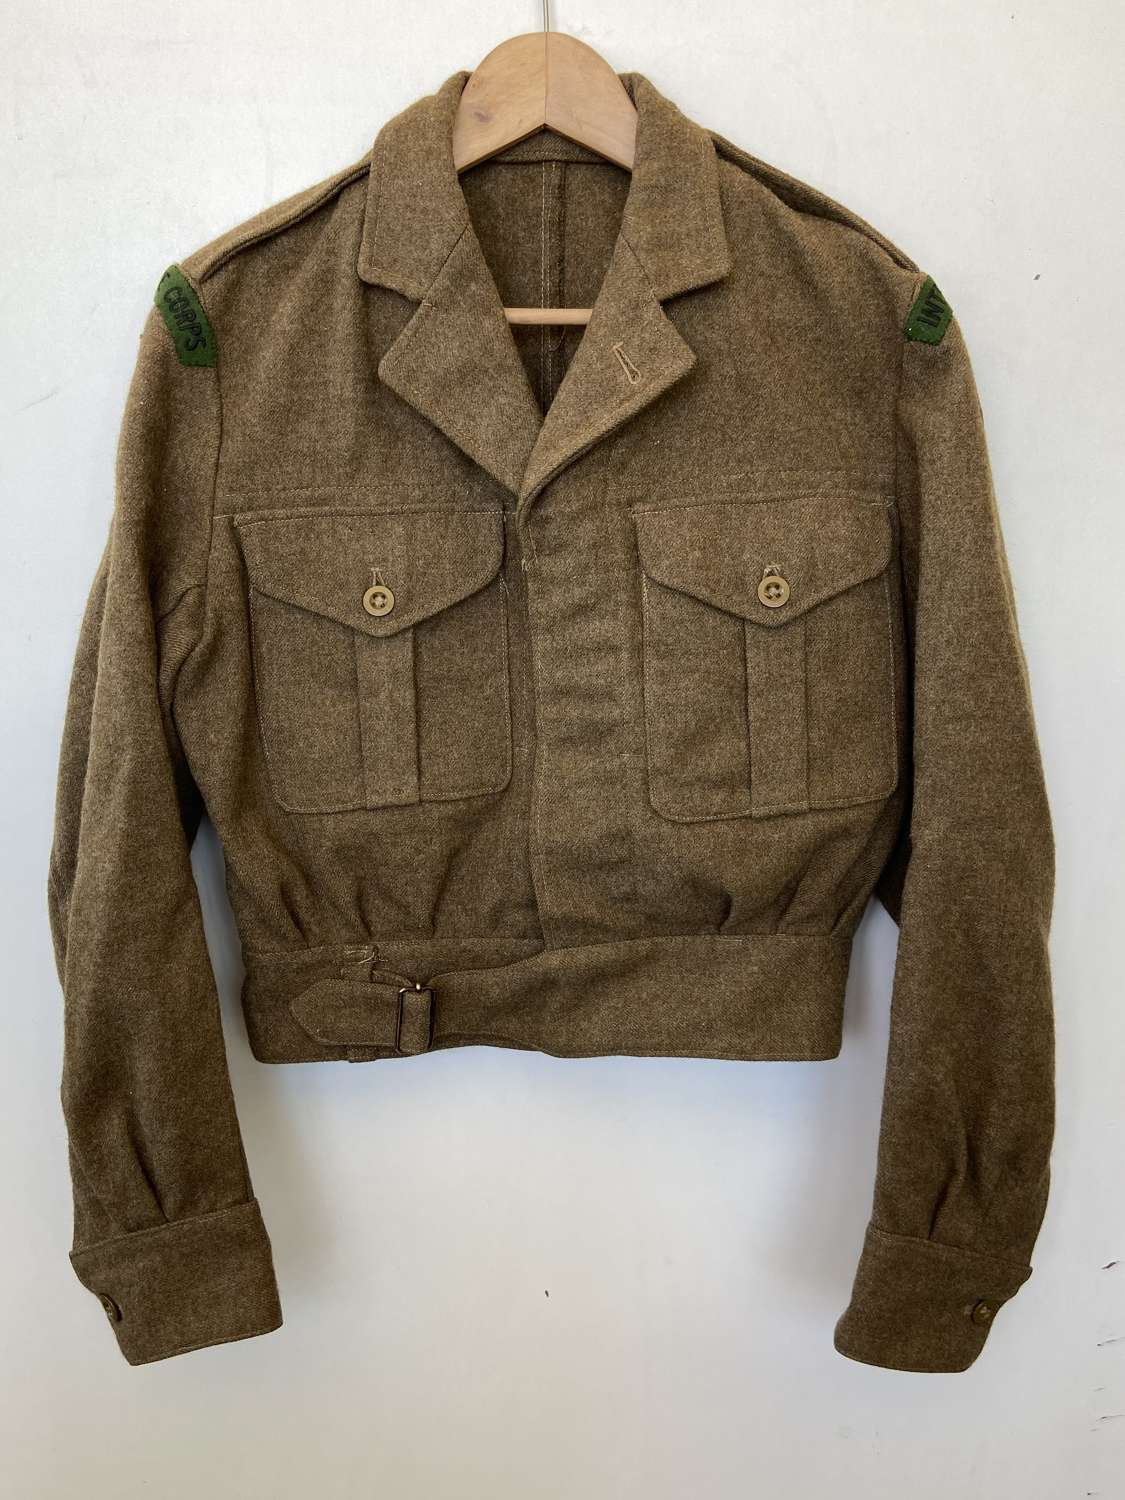 1954 Battledress Intelligence Corps With A BAOR UK Forces Germany